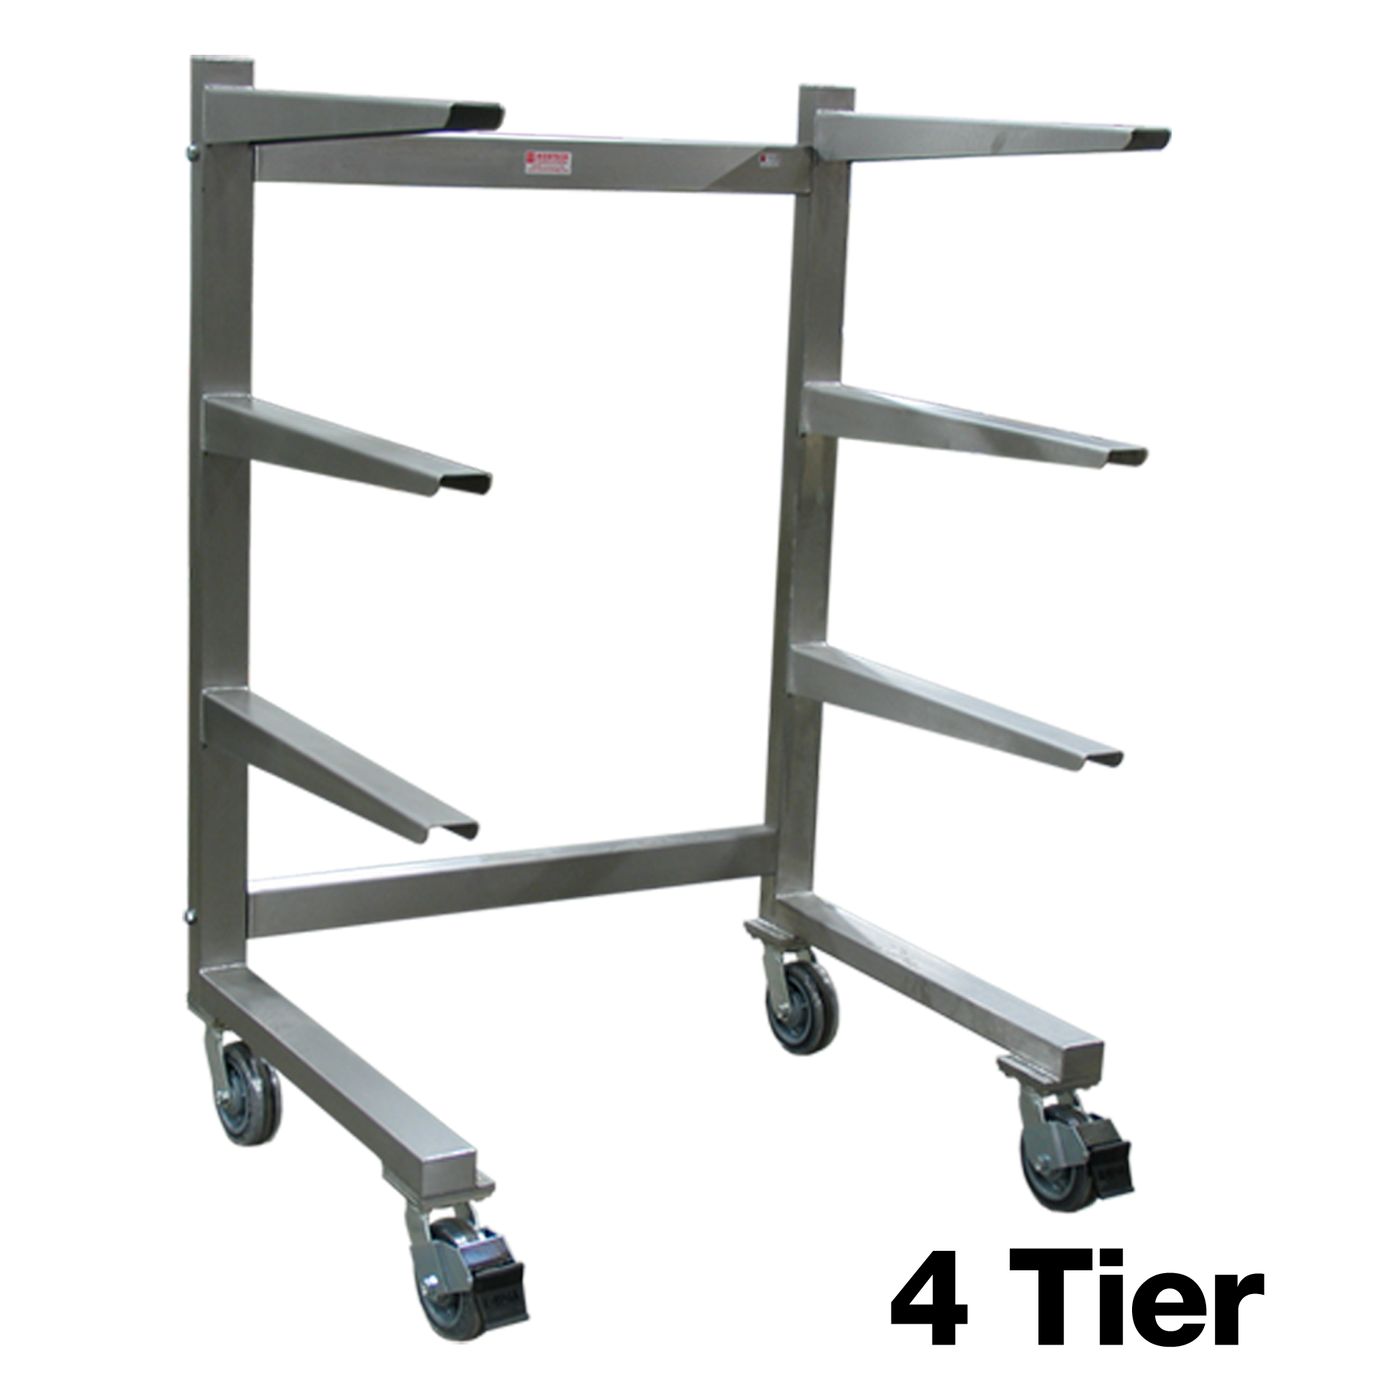 Cantilever Storage System with Casters-Cadaver Handling & Storage Systems-Mortech Manufacturing Company Inc. Quality Stainless Steel Autopsy, Morgue, Funeral Home, Necropsy, Veterinary / Anatomy, Dissection Equipment and Accessories